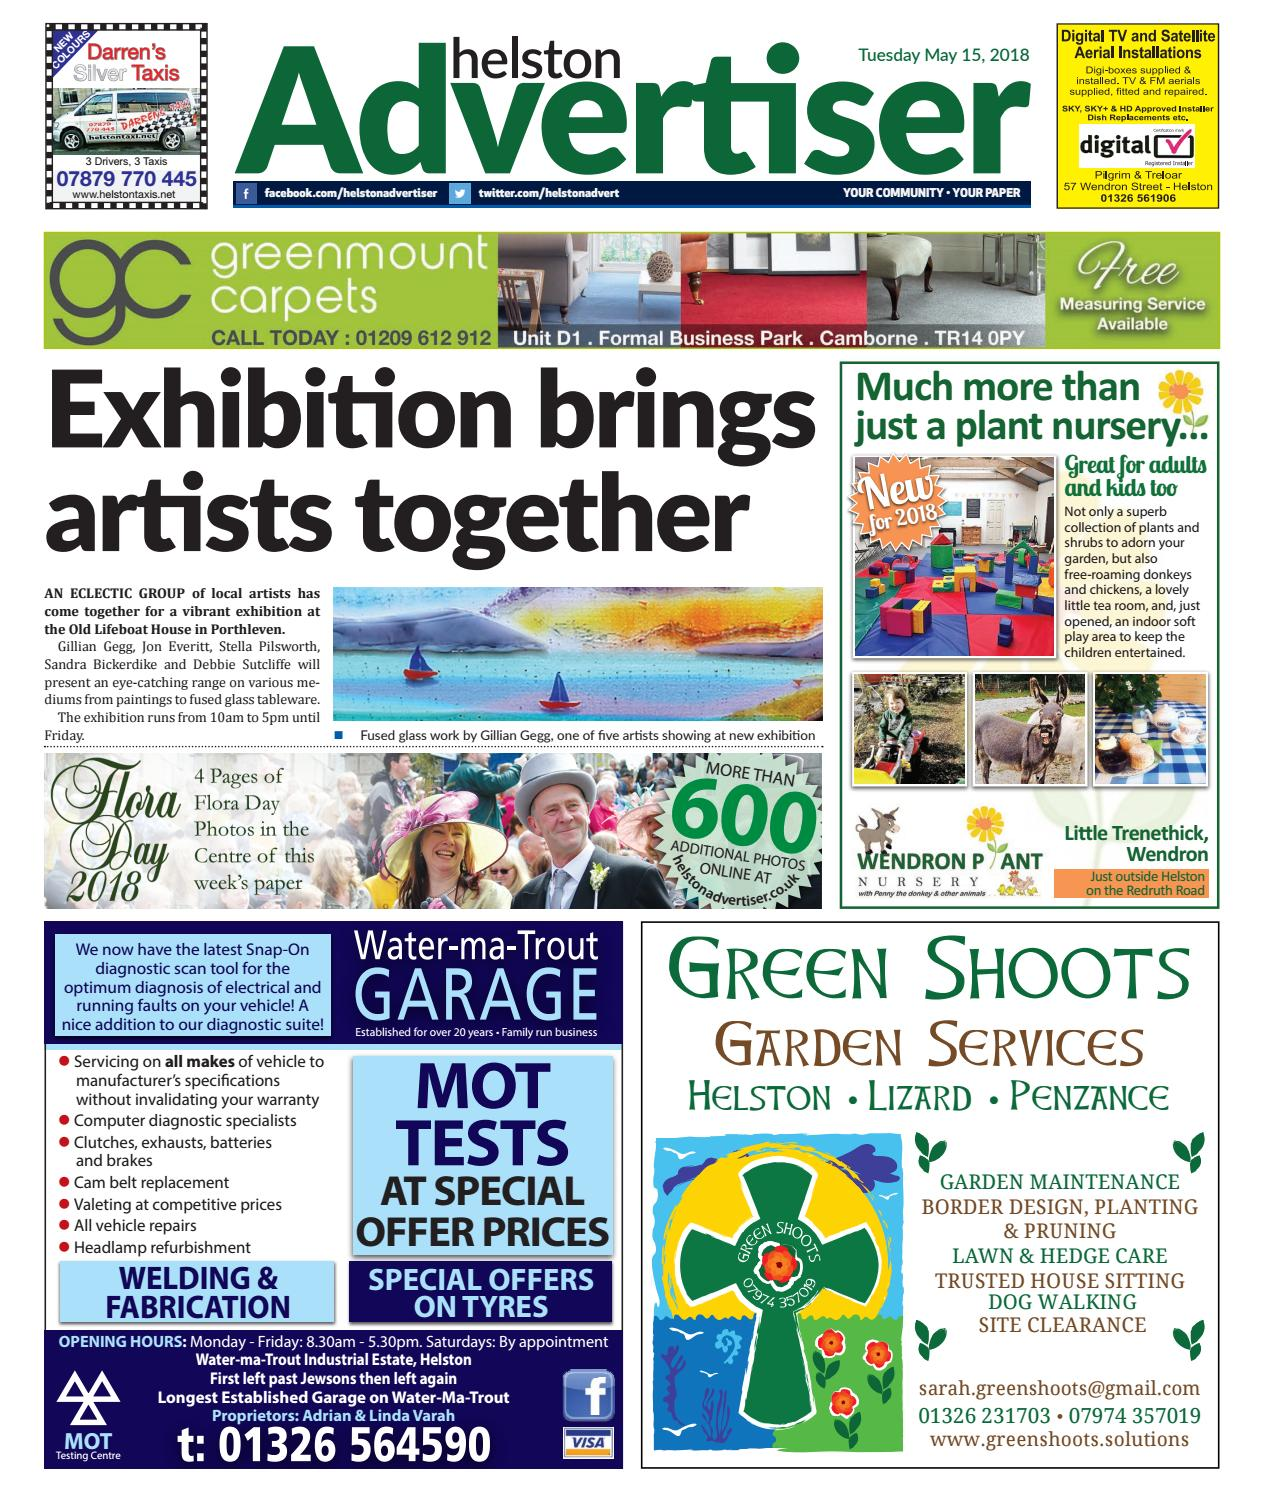 Helston Advertiser - May 15th 2018 by Helston Advertiser - issuu